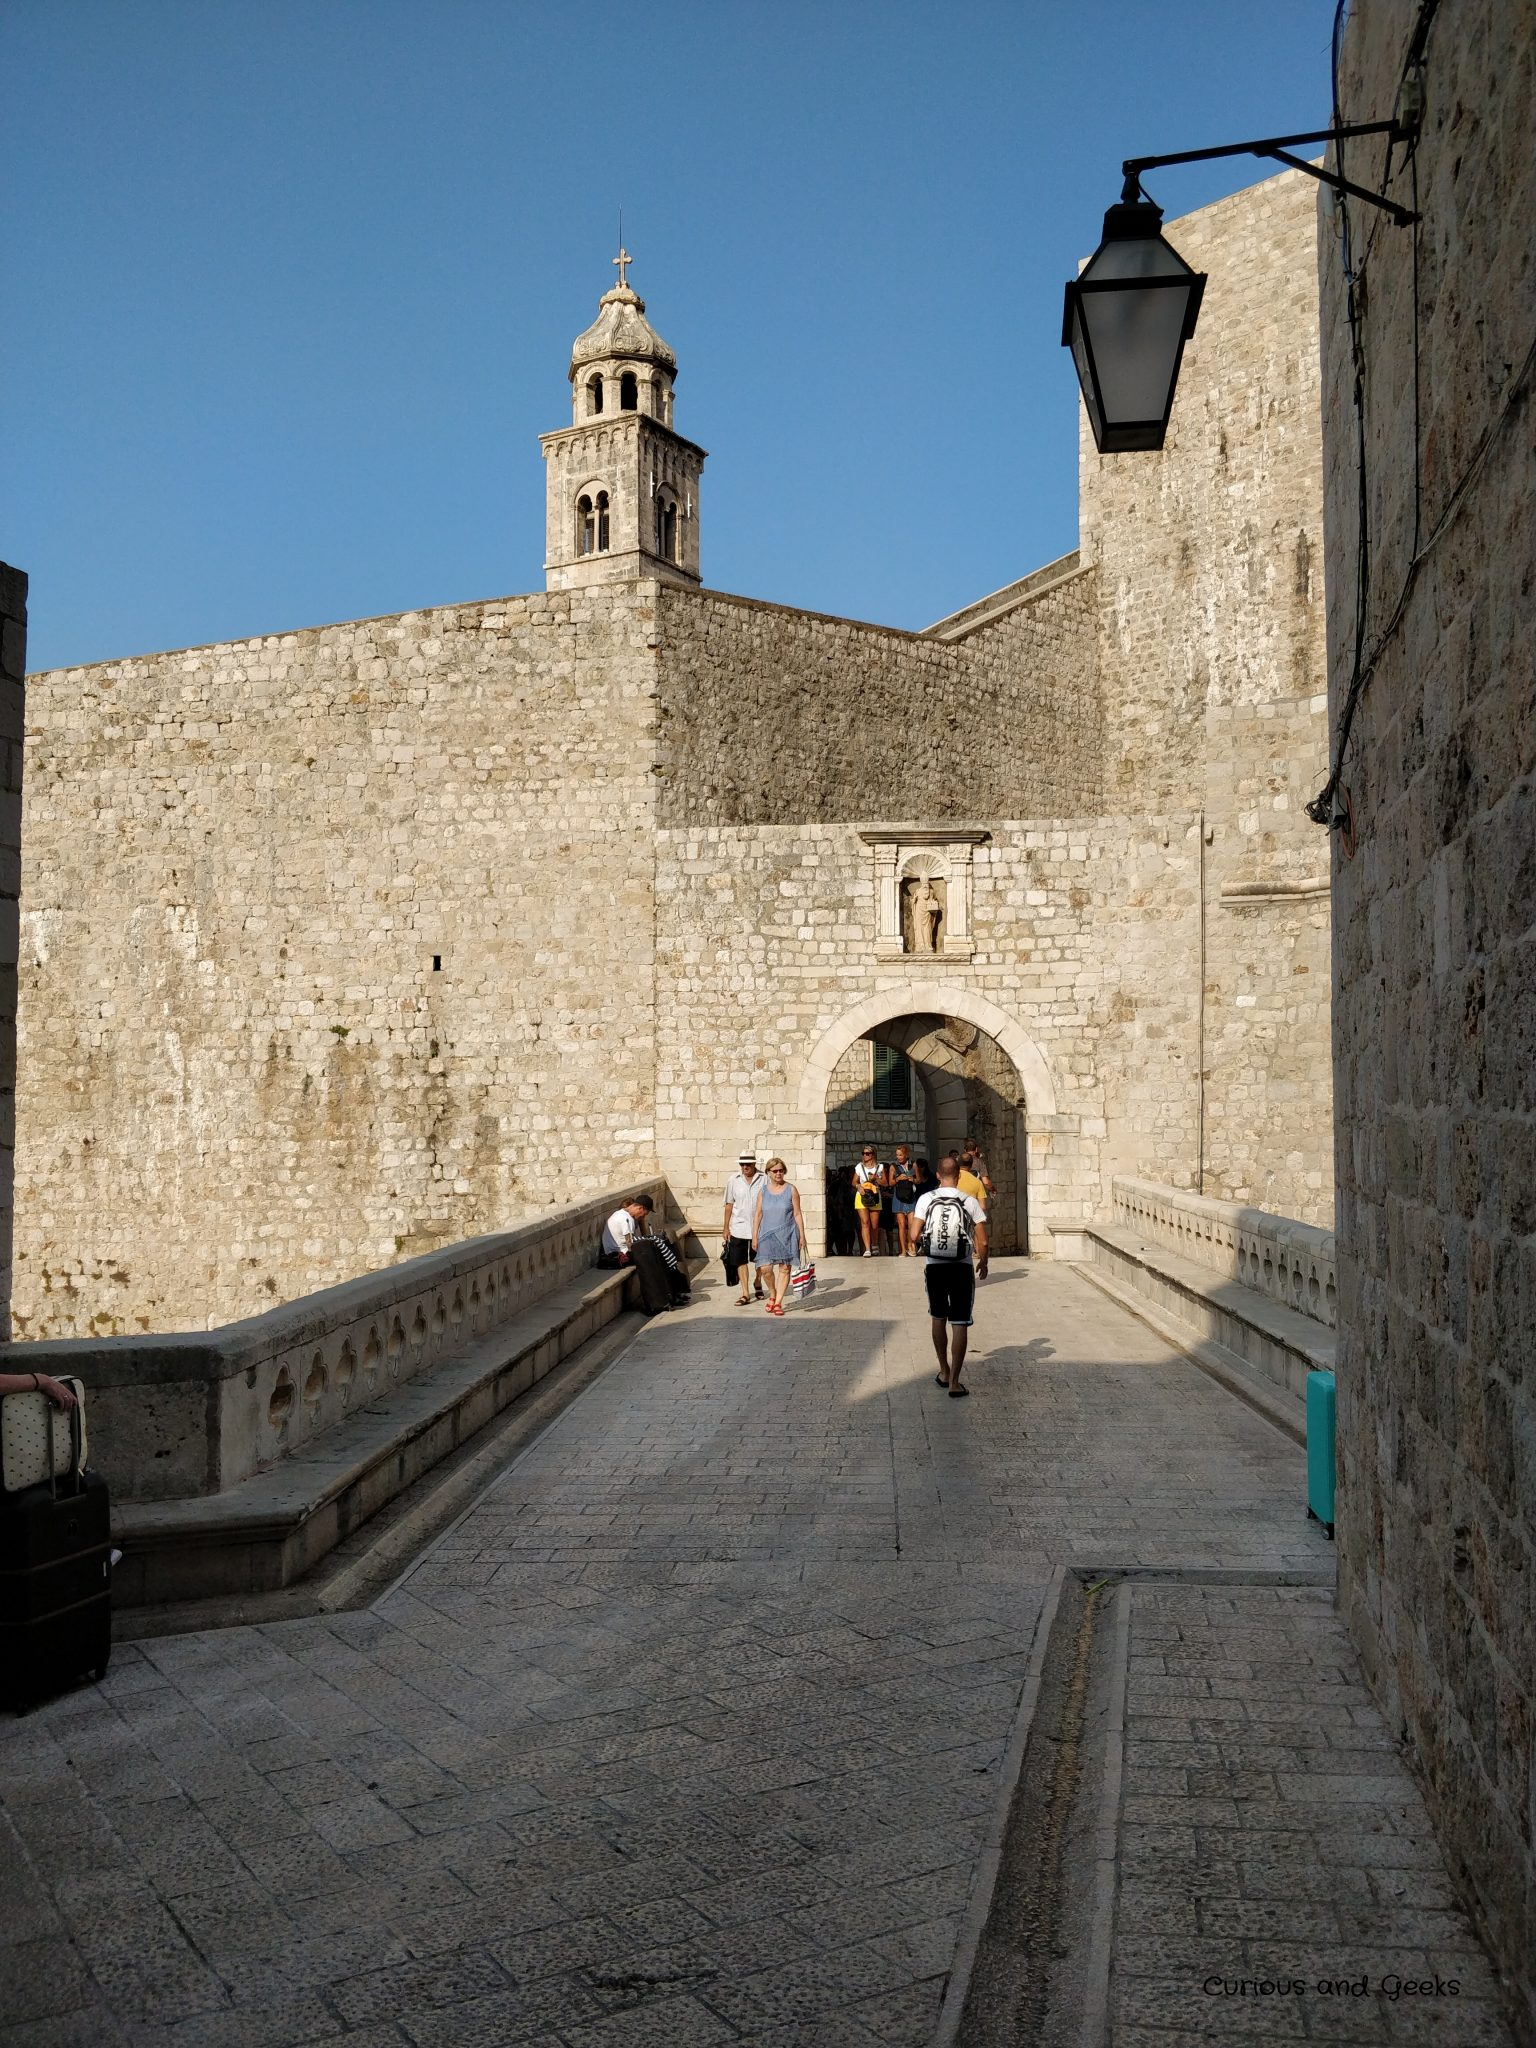 8. Ploce Gate - Game of Thrones filming locations in Dubrovnik